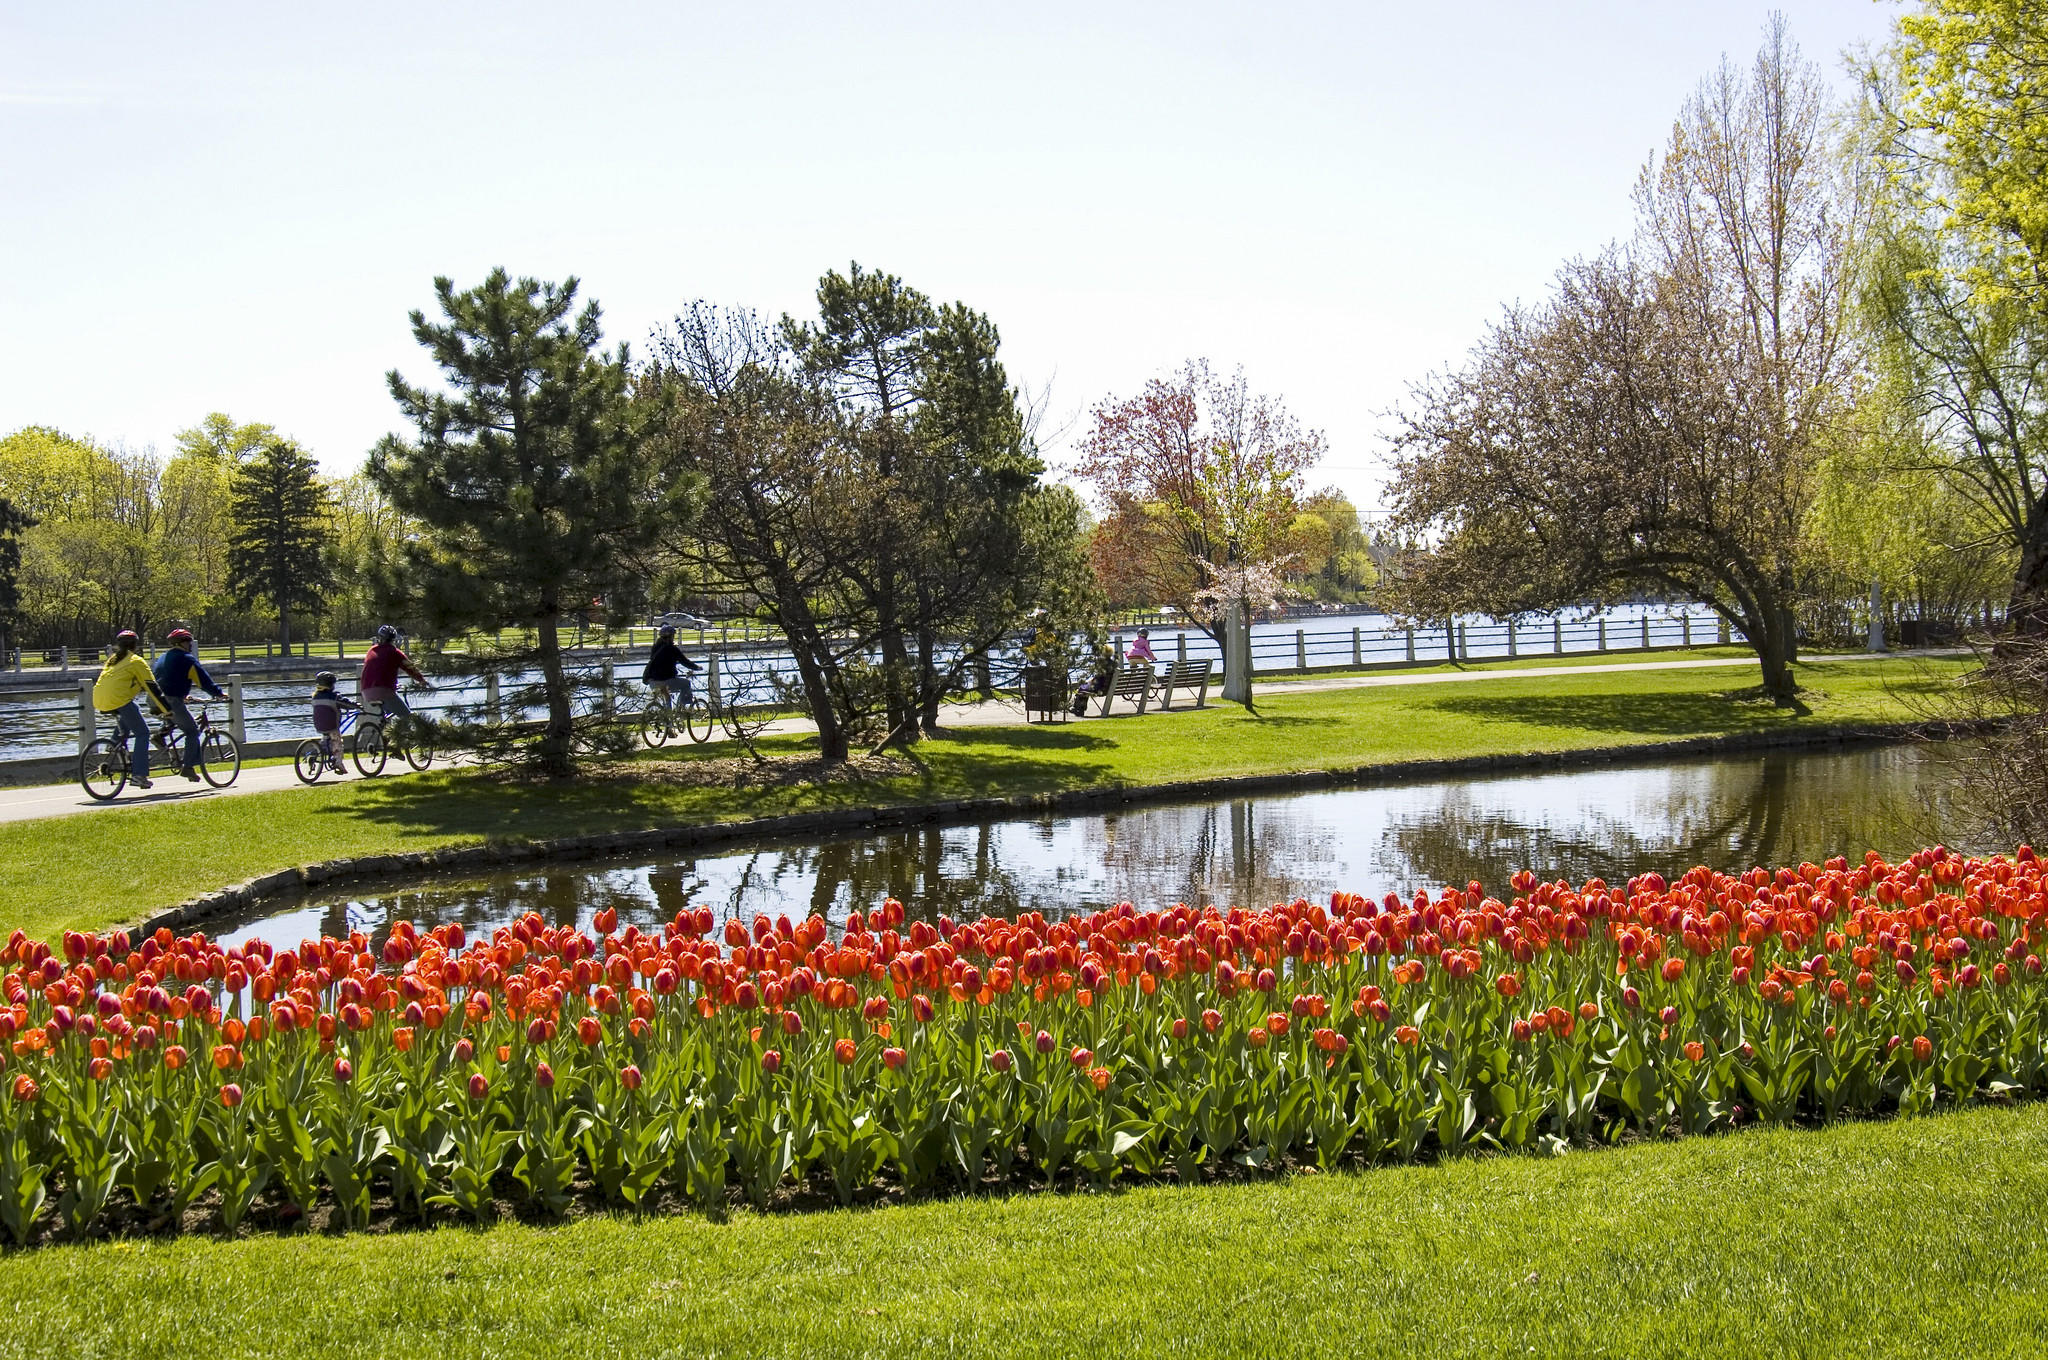 Cycling along the Rideau Canal during the Canadian Tulip Festival.